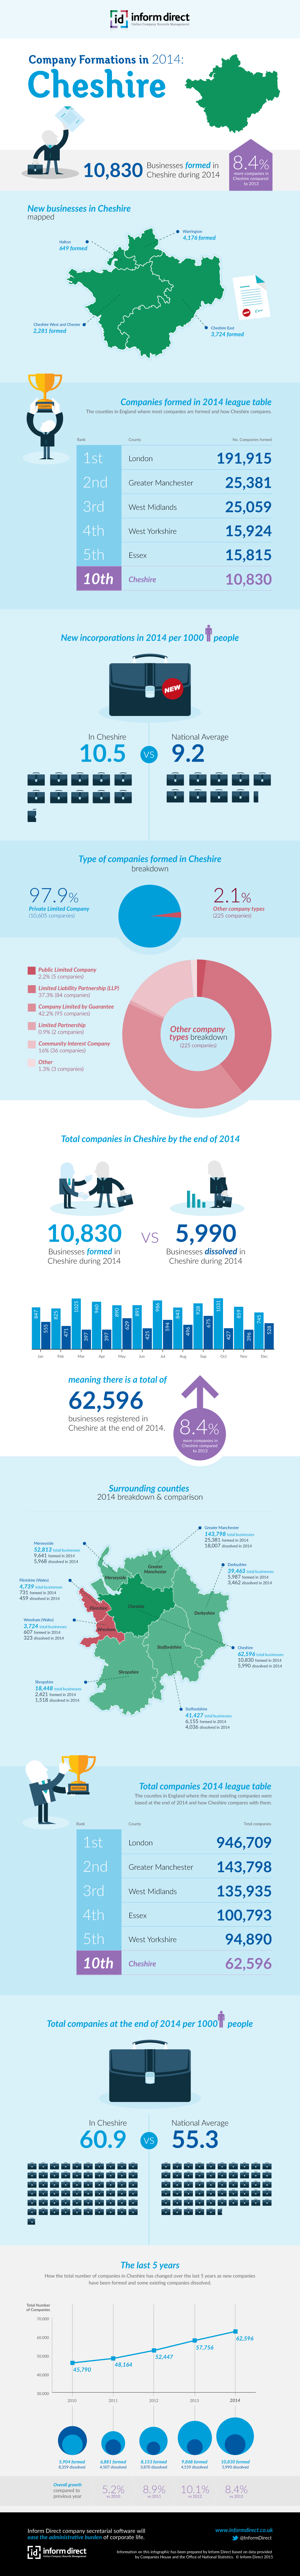 Inform Direct - Company Formations in Cheshire 2014 Infographic